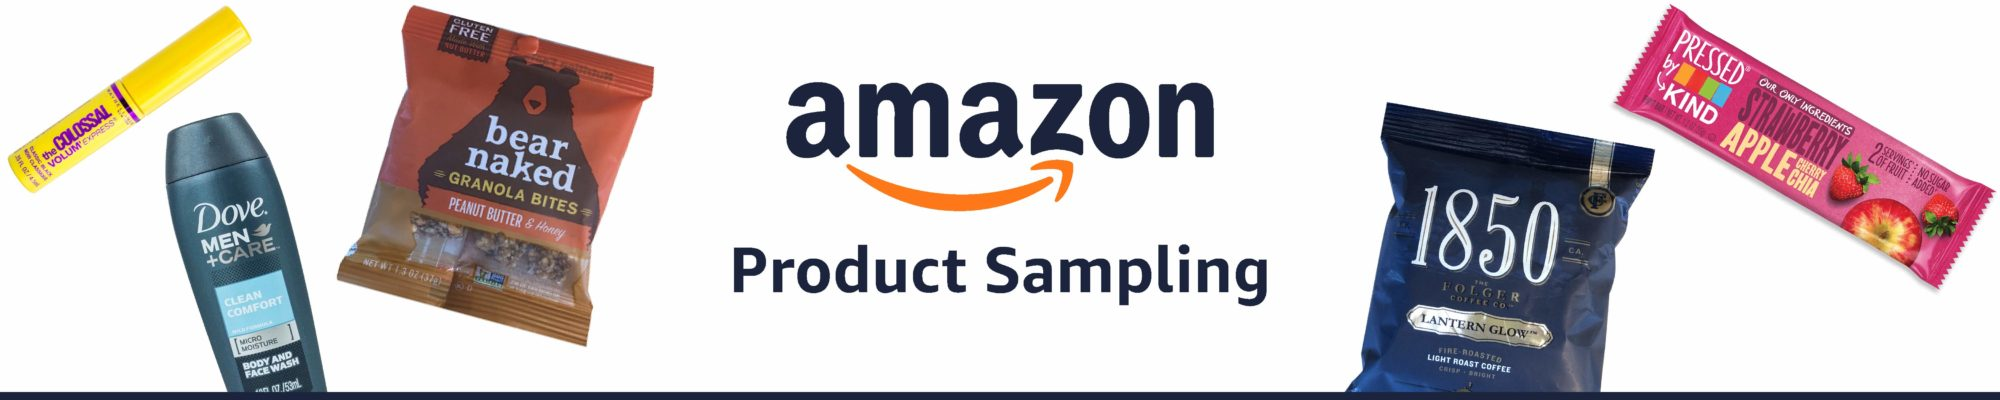 Receive FREE Samples from Amazon